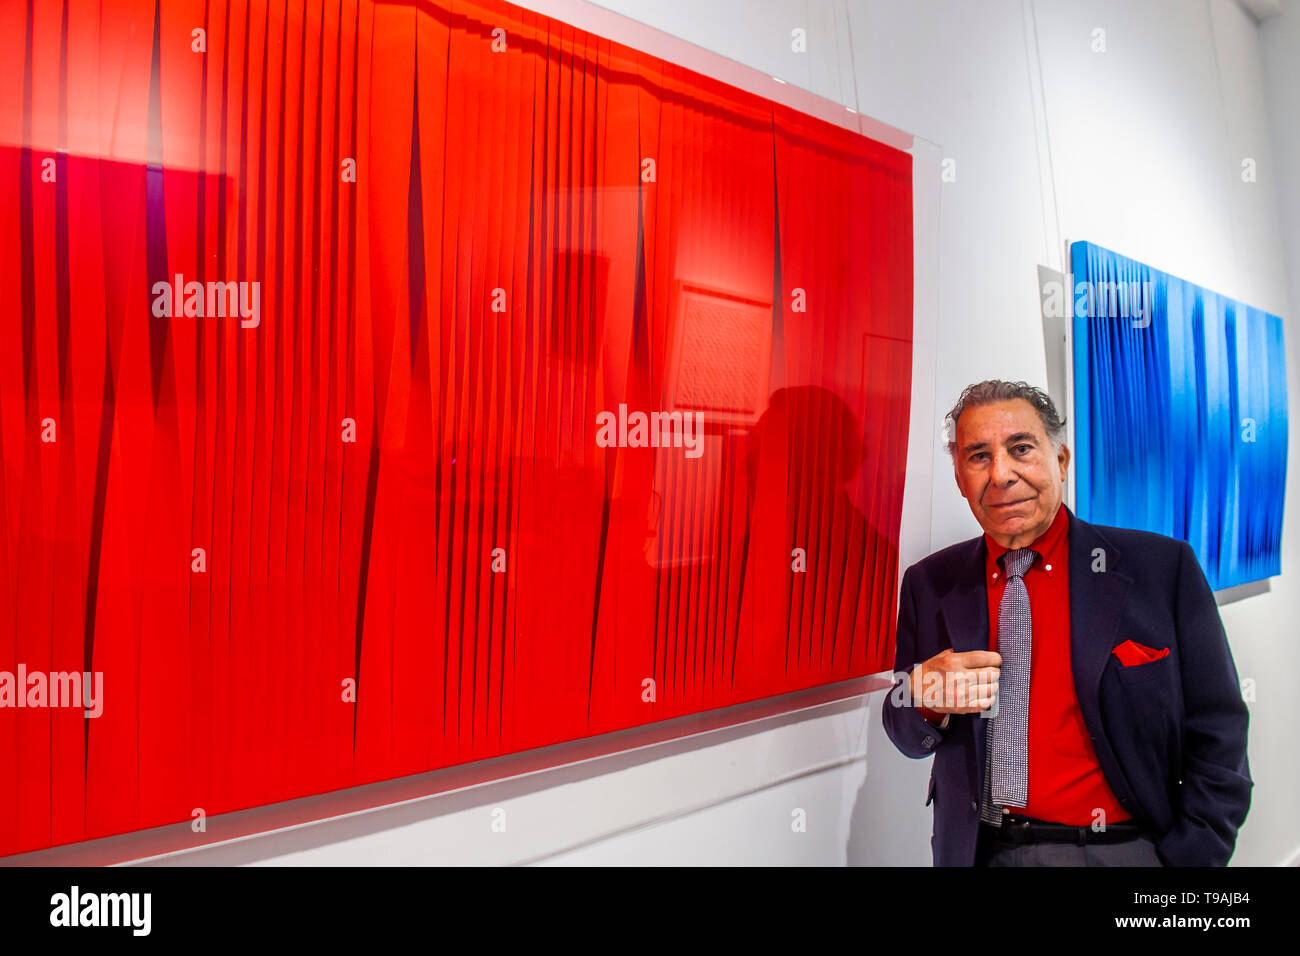 London, UK. 17th May 2019. Sincronicità rosso fluo vibrante, 2018 and London, UK. 17th May 2019. Sincronicita azzurro blu iridescente, 2018 by Pino Manos (pictured) - Spaziale! at Opera Gallery London. Organised in collaboration with the Italian Embassy in London, the exhibition includes 40 iconic canvases by Lucio Fontana, Agostino Bonalumi and Enrico Castellani among others. Credit: Guy Bell/Alamy Live News - Stock Image